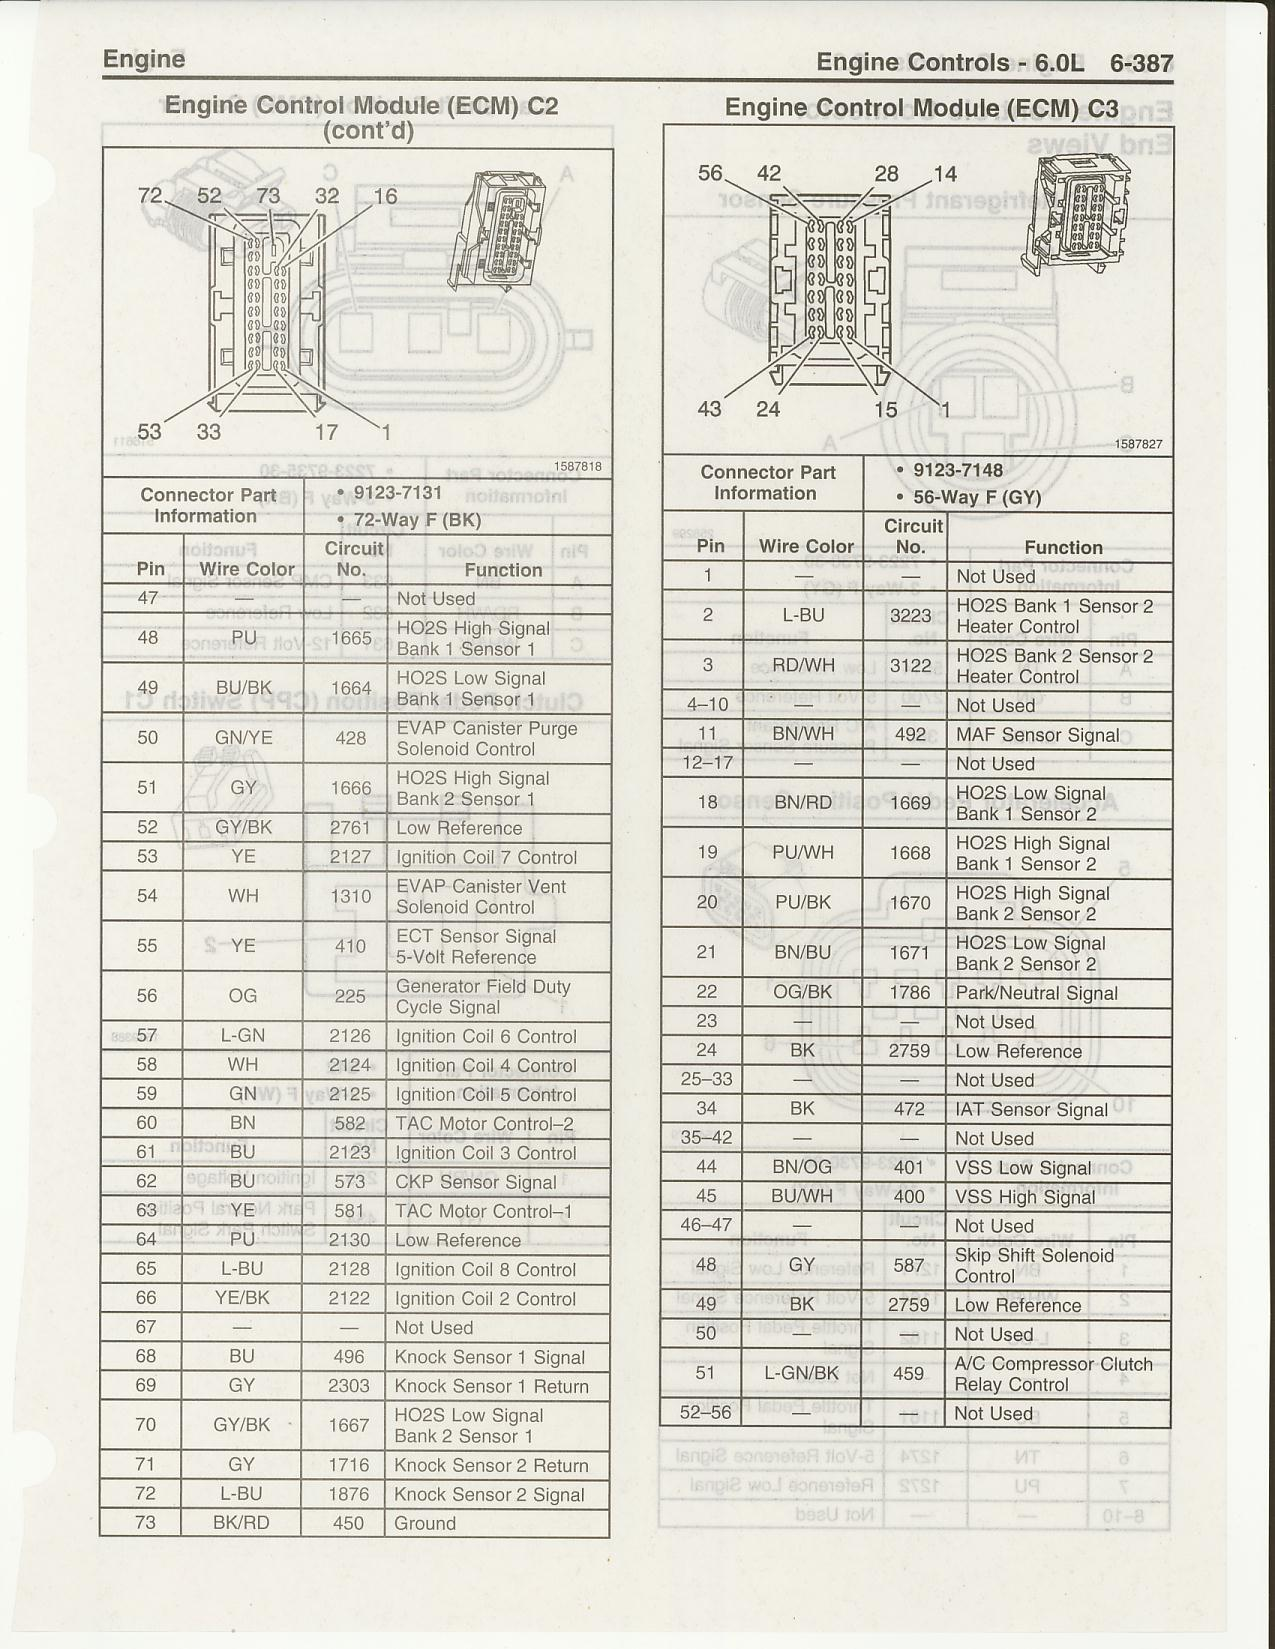 Gmc Ecm Wiring Diagram - Wiring Diagram 500 Gmc Ecu Wiring Diagram on gm horn diagram, gm steering column diagram, ecu block diagram, gm 1228747 computer diagram, gm transmission diagram, toyota 4runner diagram, ecu fuse diagram, ecu circuits, ecu schematic diagram, gm power steering pump diagram, nissan sentra electrical diagram, exhaust diagram,